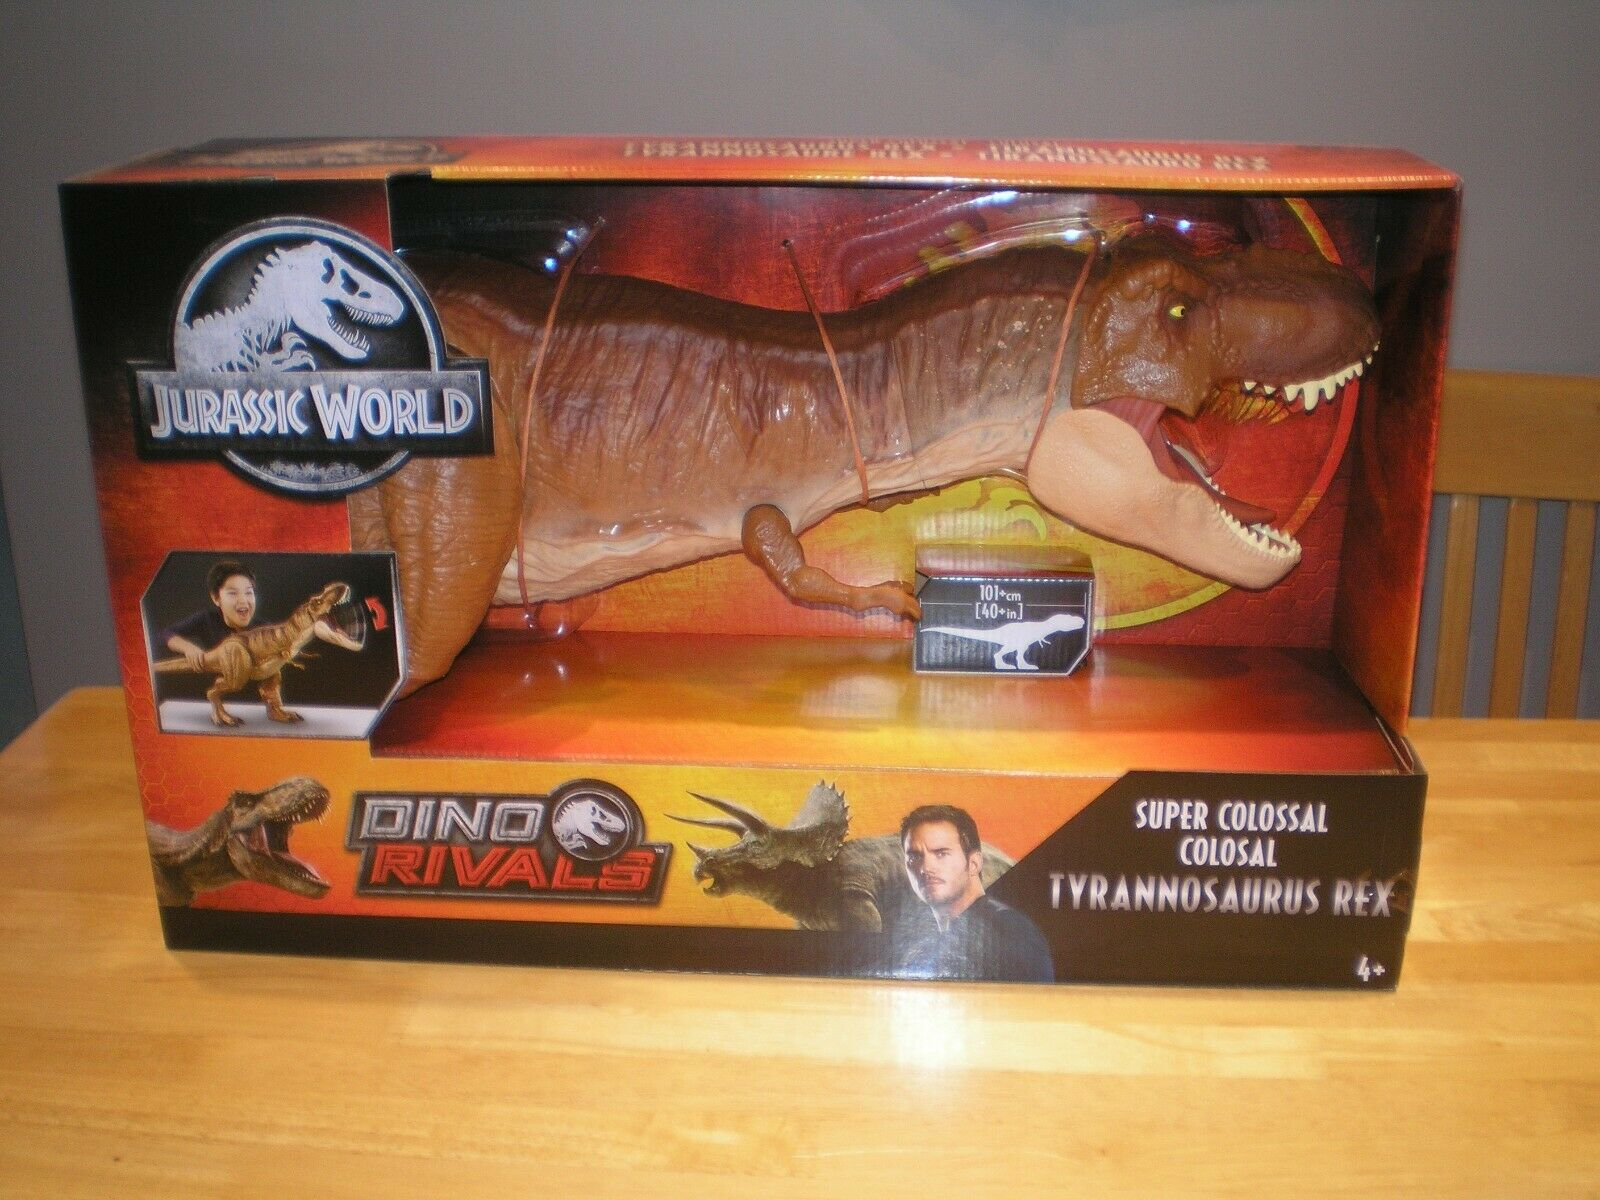 NUOVO JURASSIC WORLD Super colossale TREX